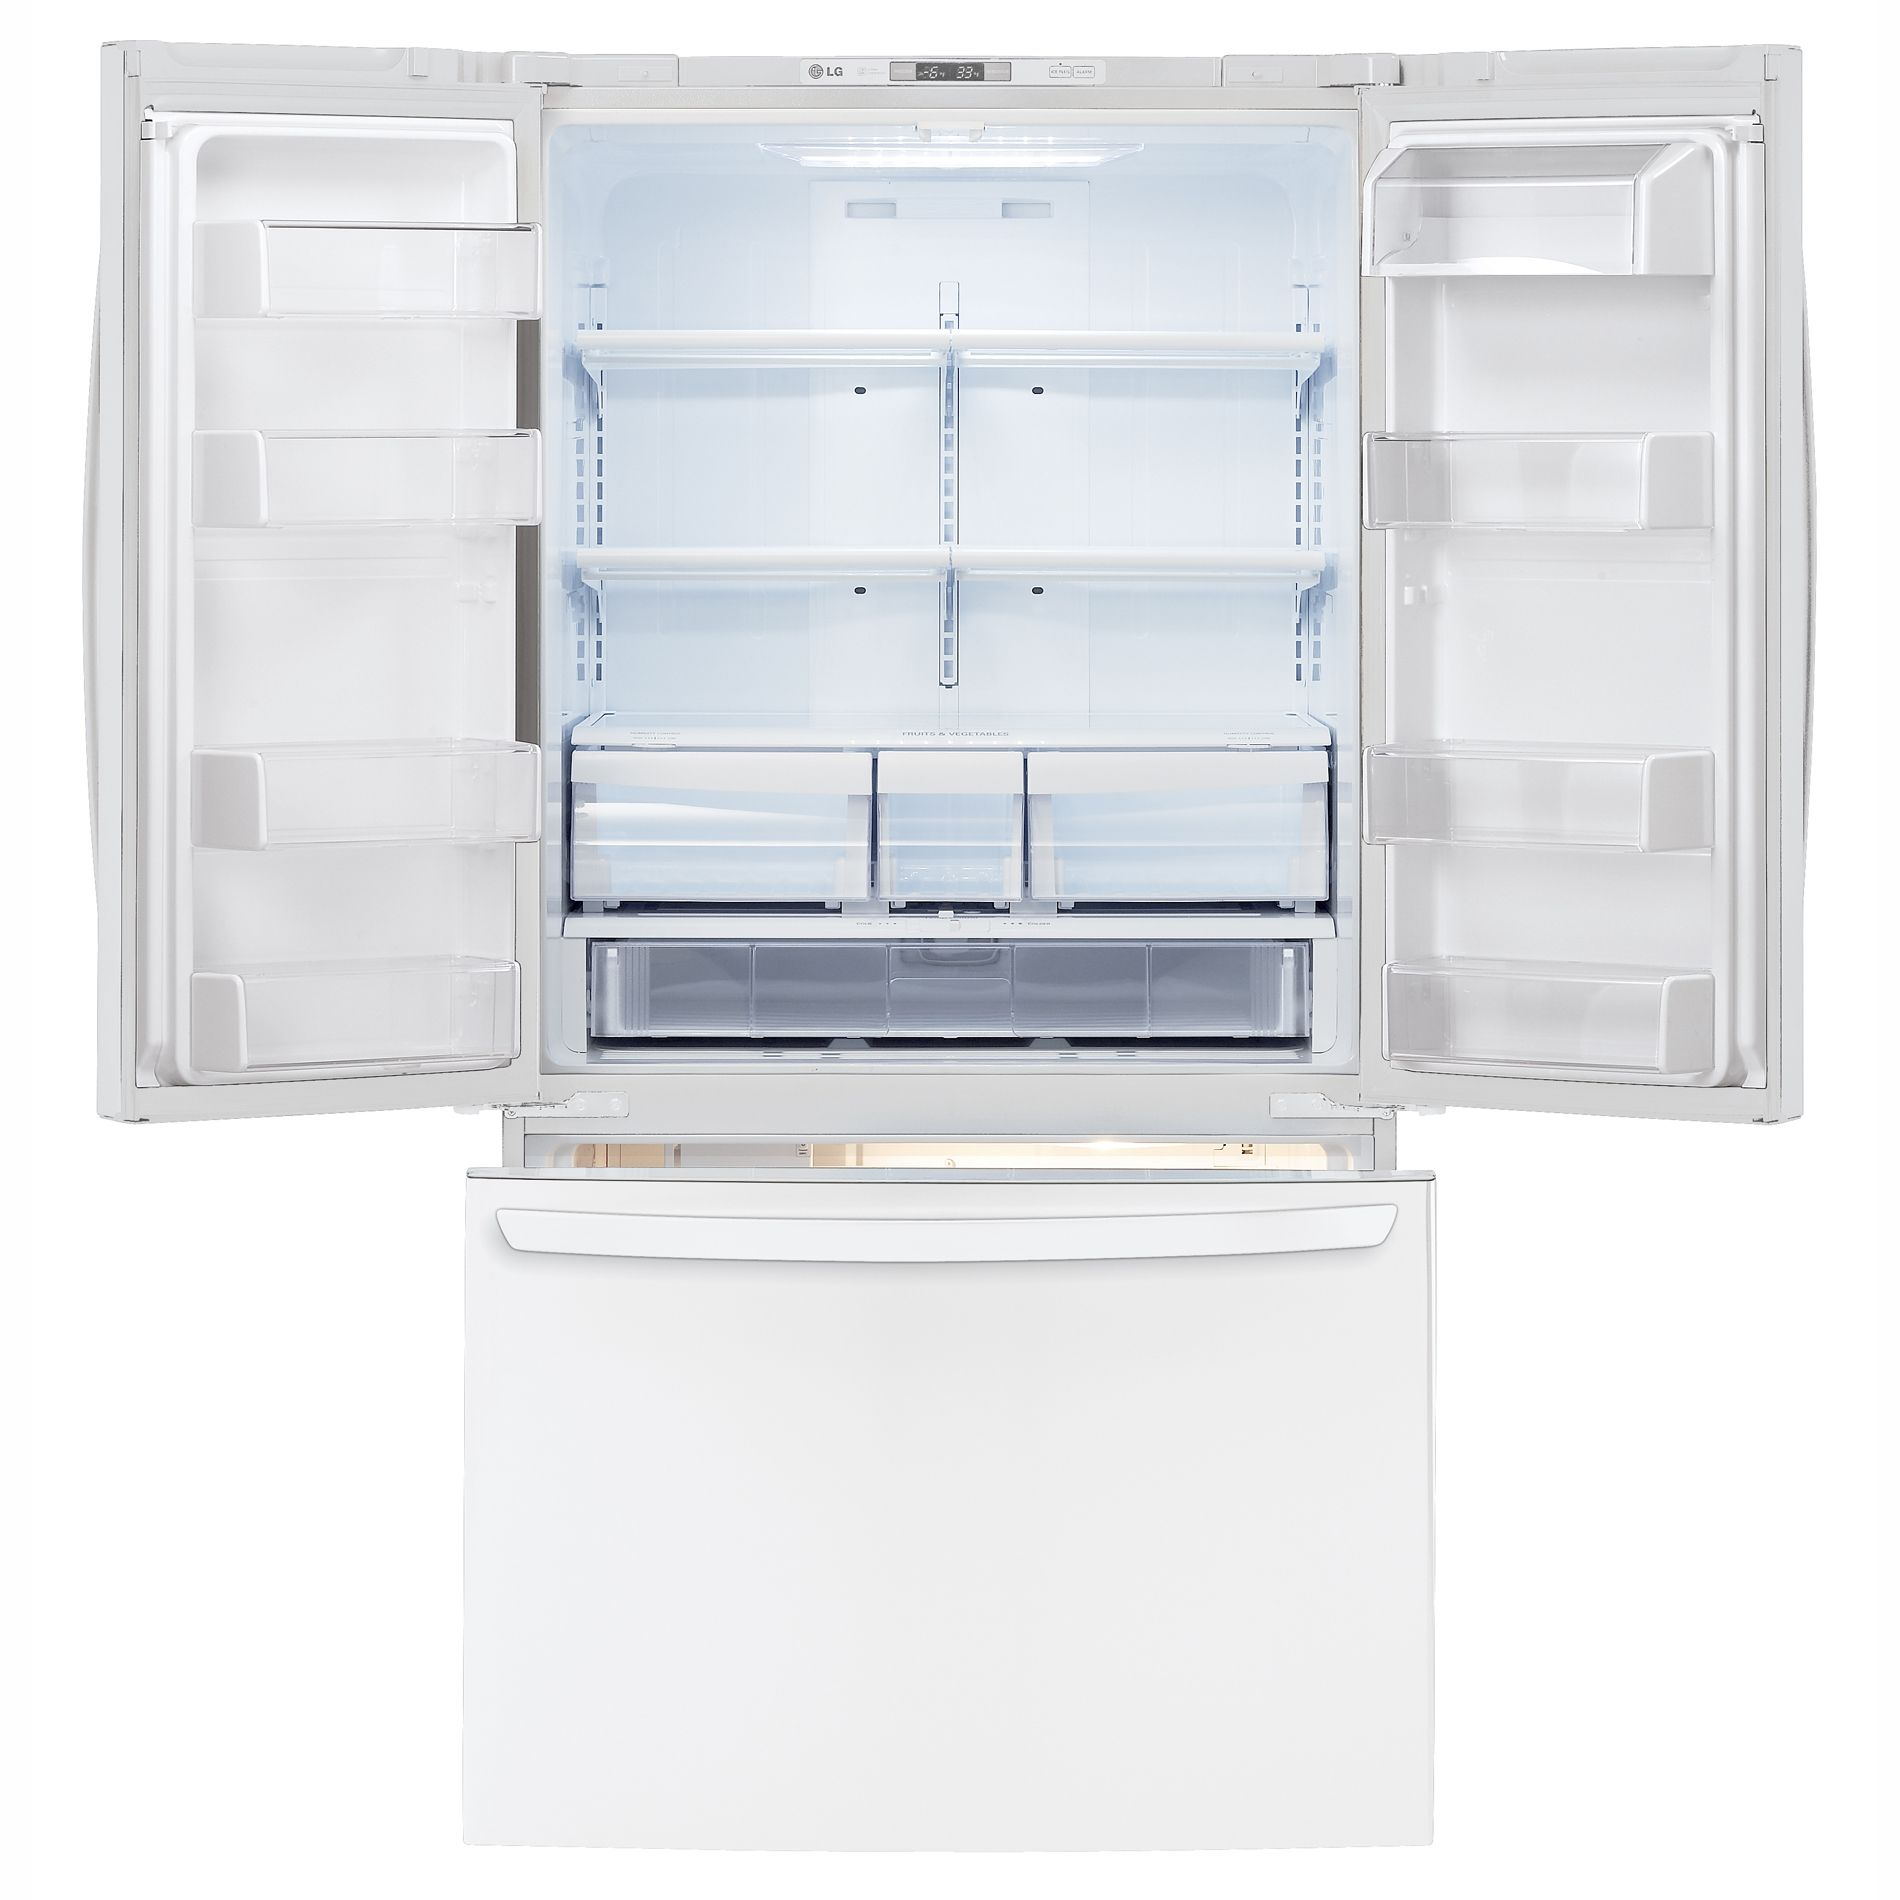 LG 25.0 cu. ft. French-Door Bottom-Freezer Refrigerator (LFC25776SW)